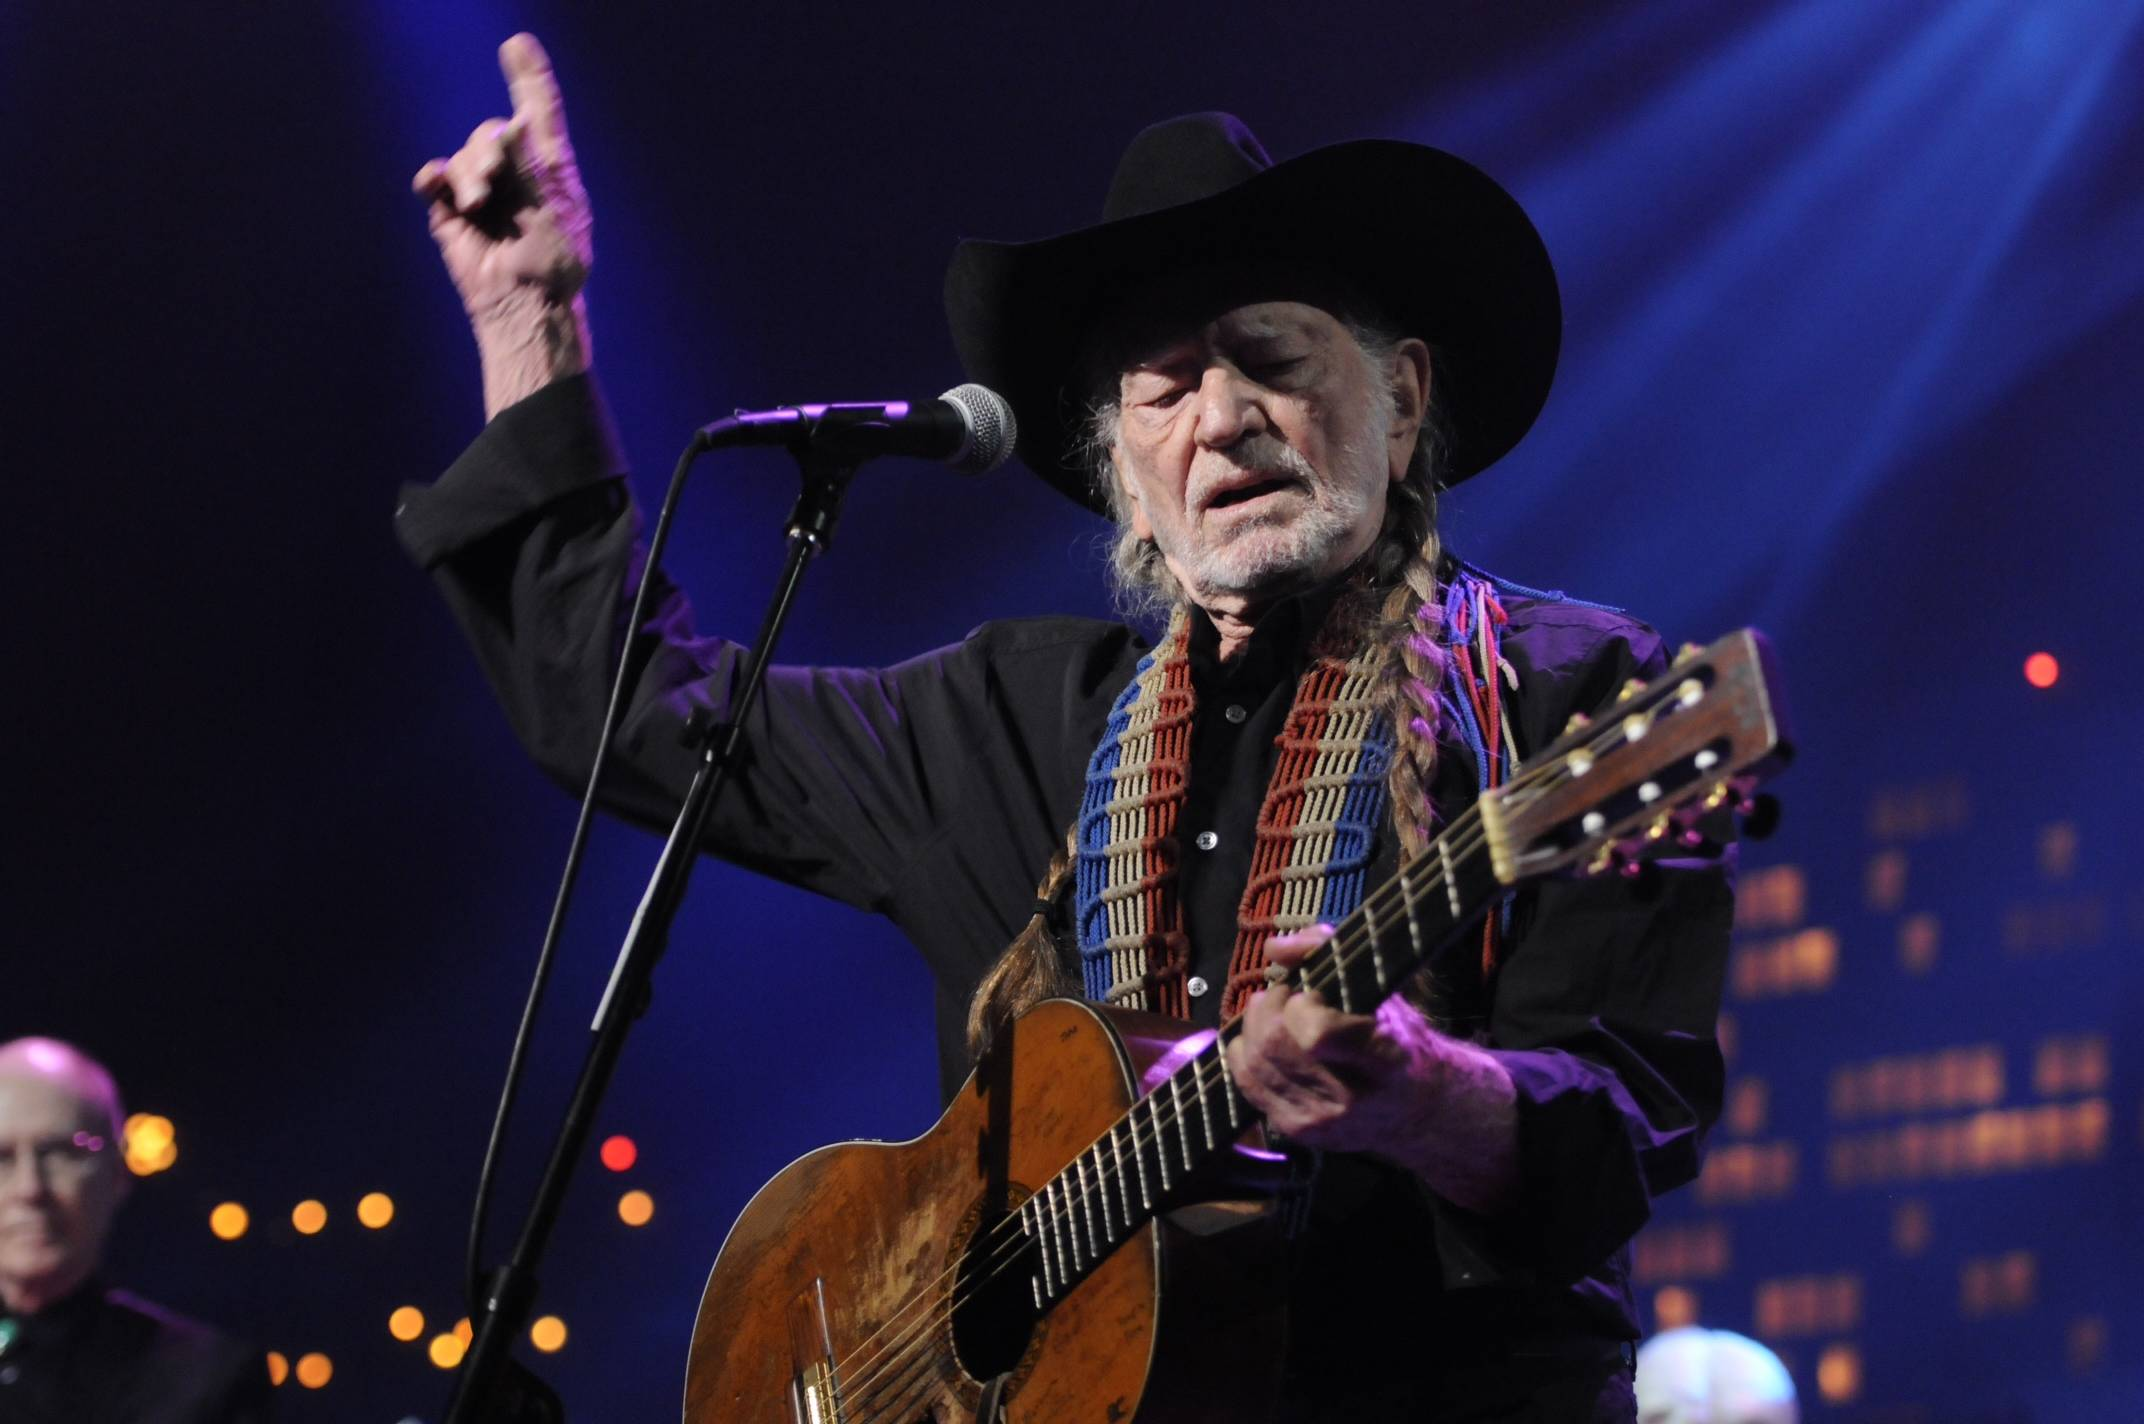 Willie Nelson performs during the Austin City Limits Hall of Fame show on Saturday. Nelson, who will celebrate his 81st birthday next week by receiving his fifth-degree black belt in martial arts, was the first Austin City Limits performer in 1974 on what is now the longest-running television music program in the U.S.